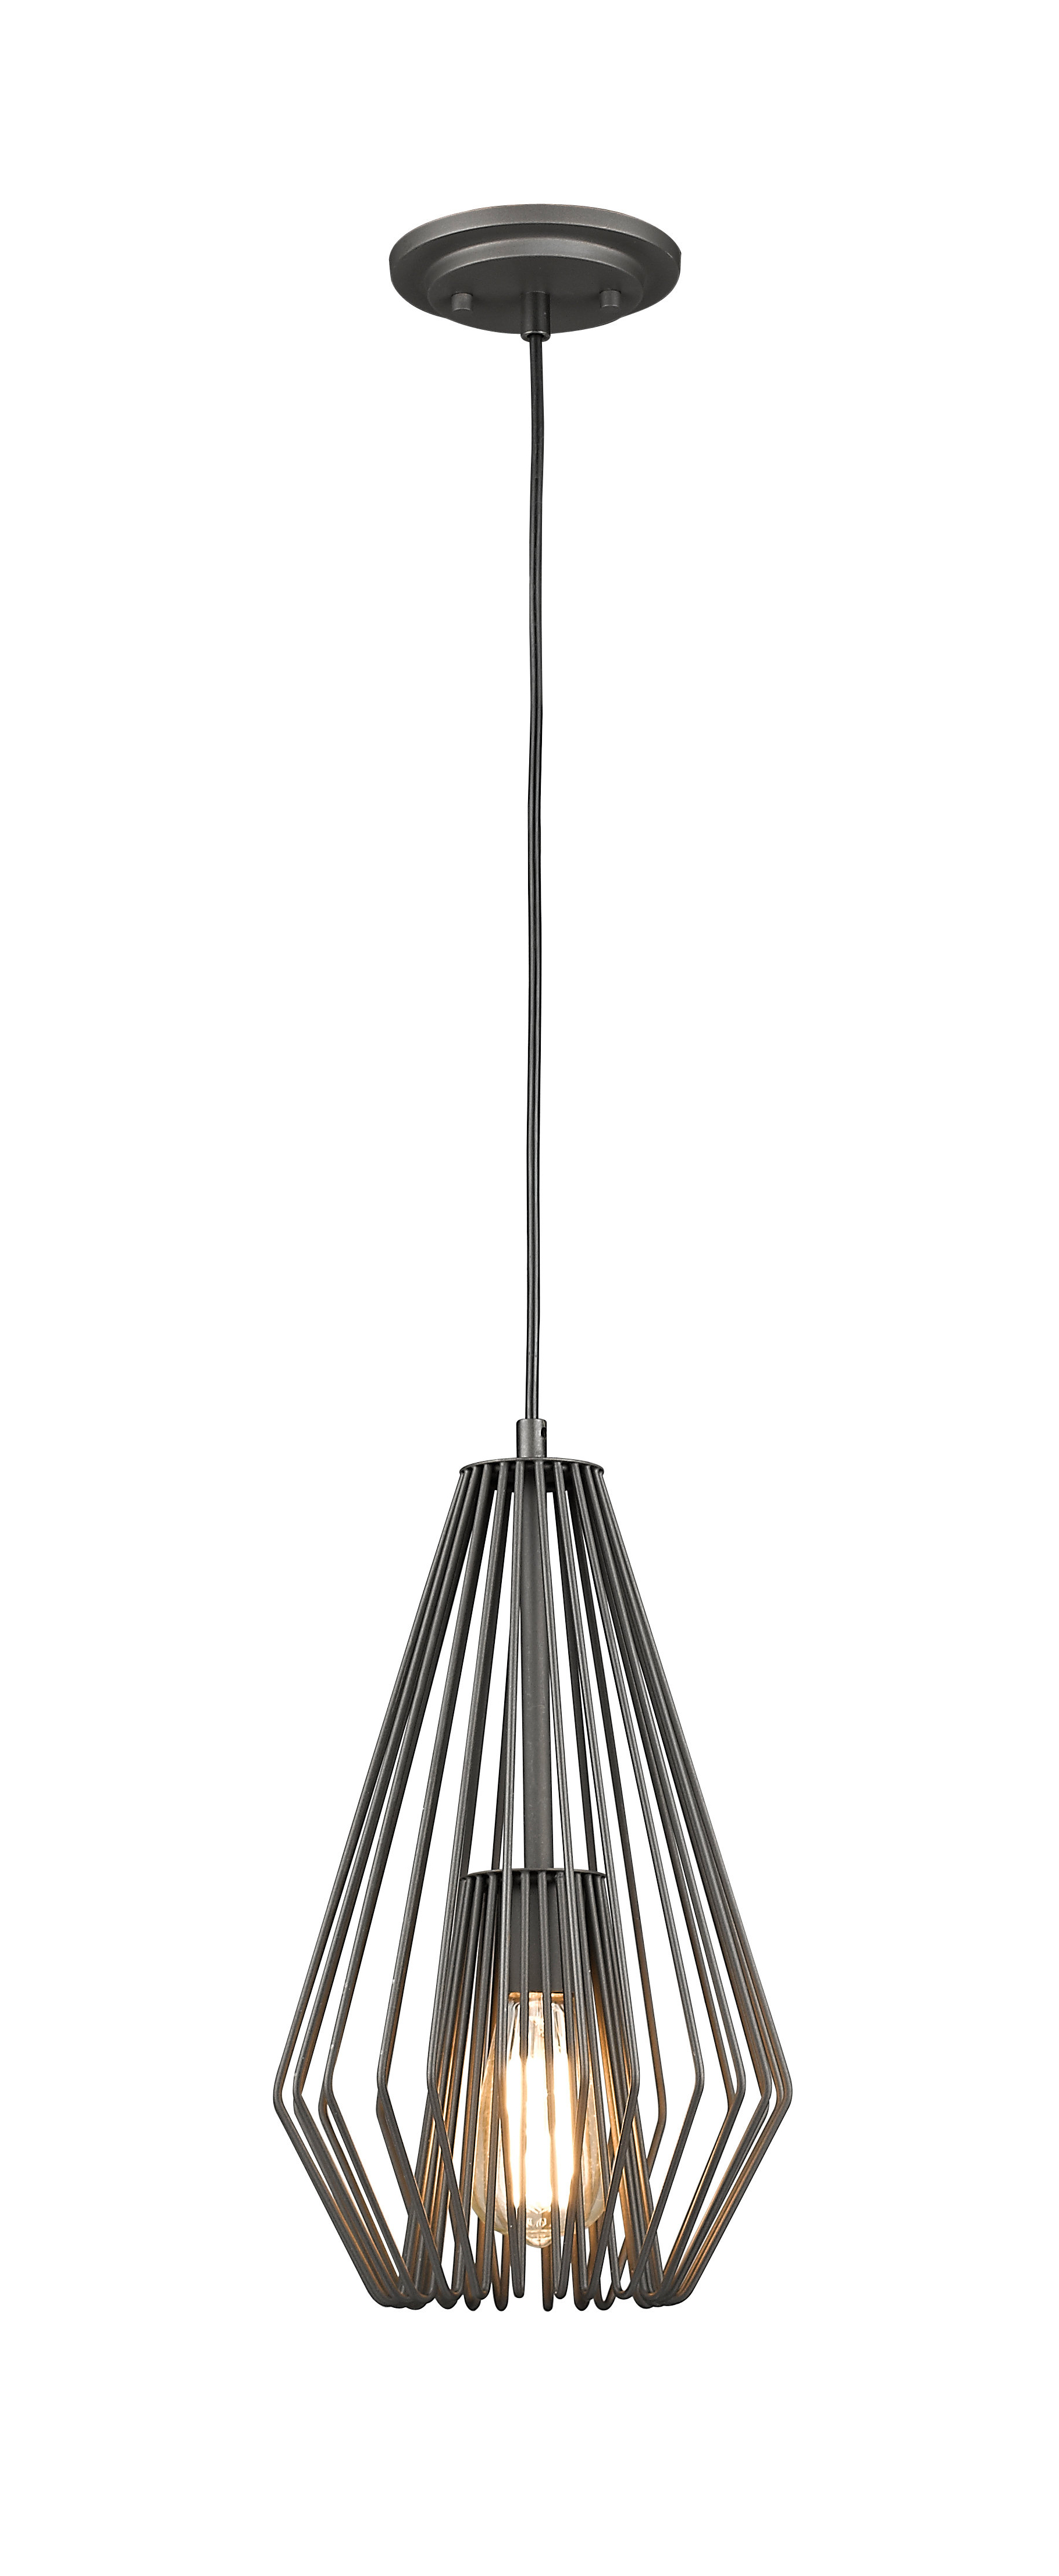 Well Liked Risher 1 Light Geometric Pendant Pertaining To Hydetown 1 Light Single Geometric Pendants (View 6 of 20)